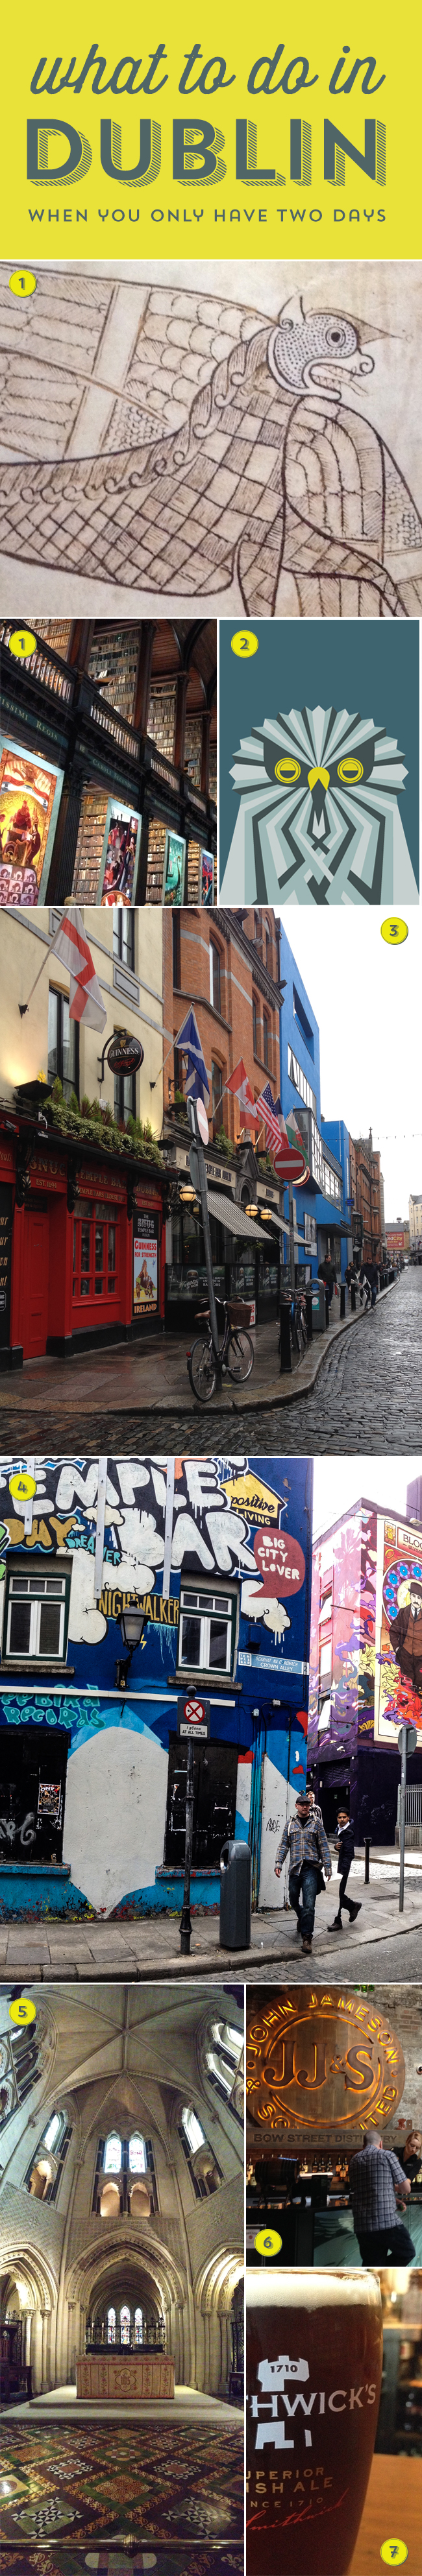 What to do in Dublin when you only have two days!